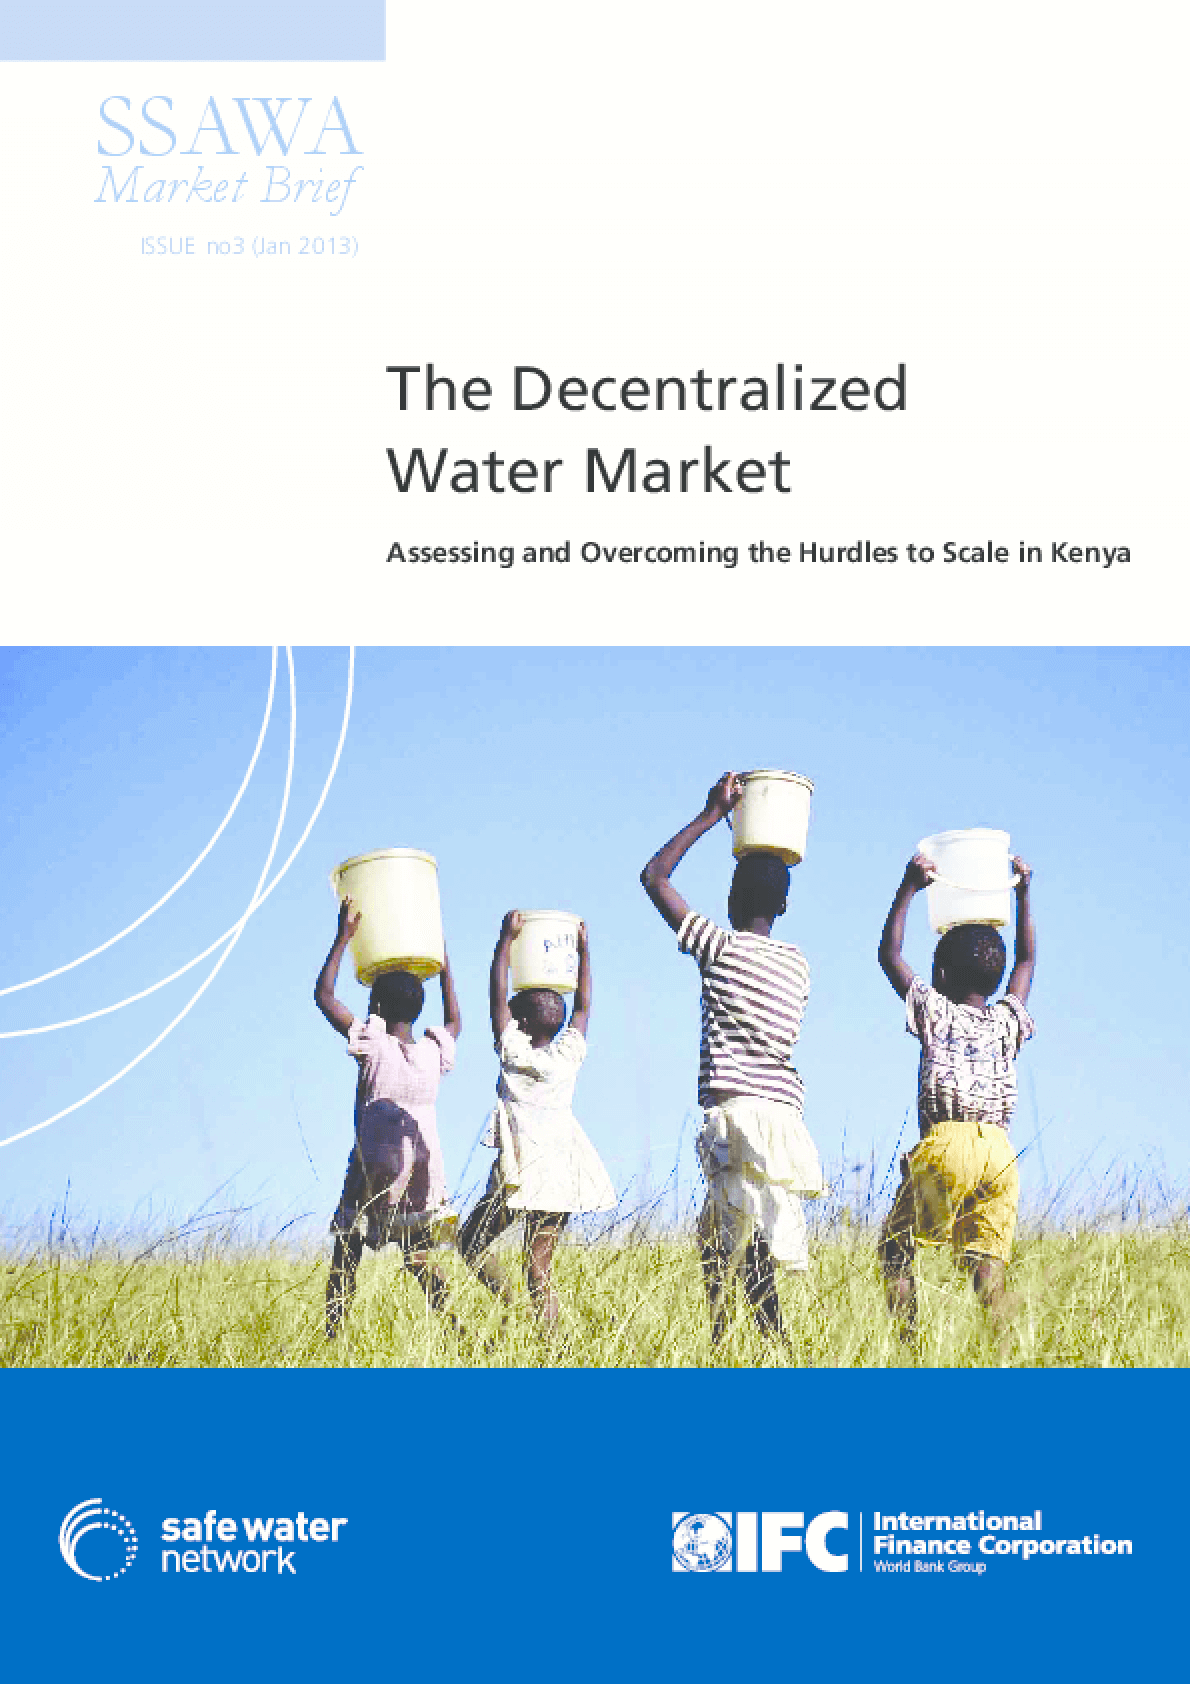 The Decentralized Water Market: Assessing and Overcoming the Hurdles to Scale in Kenya